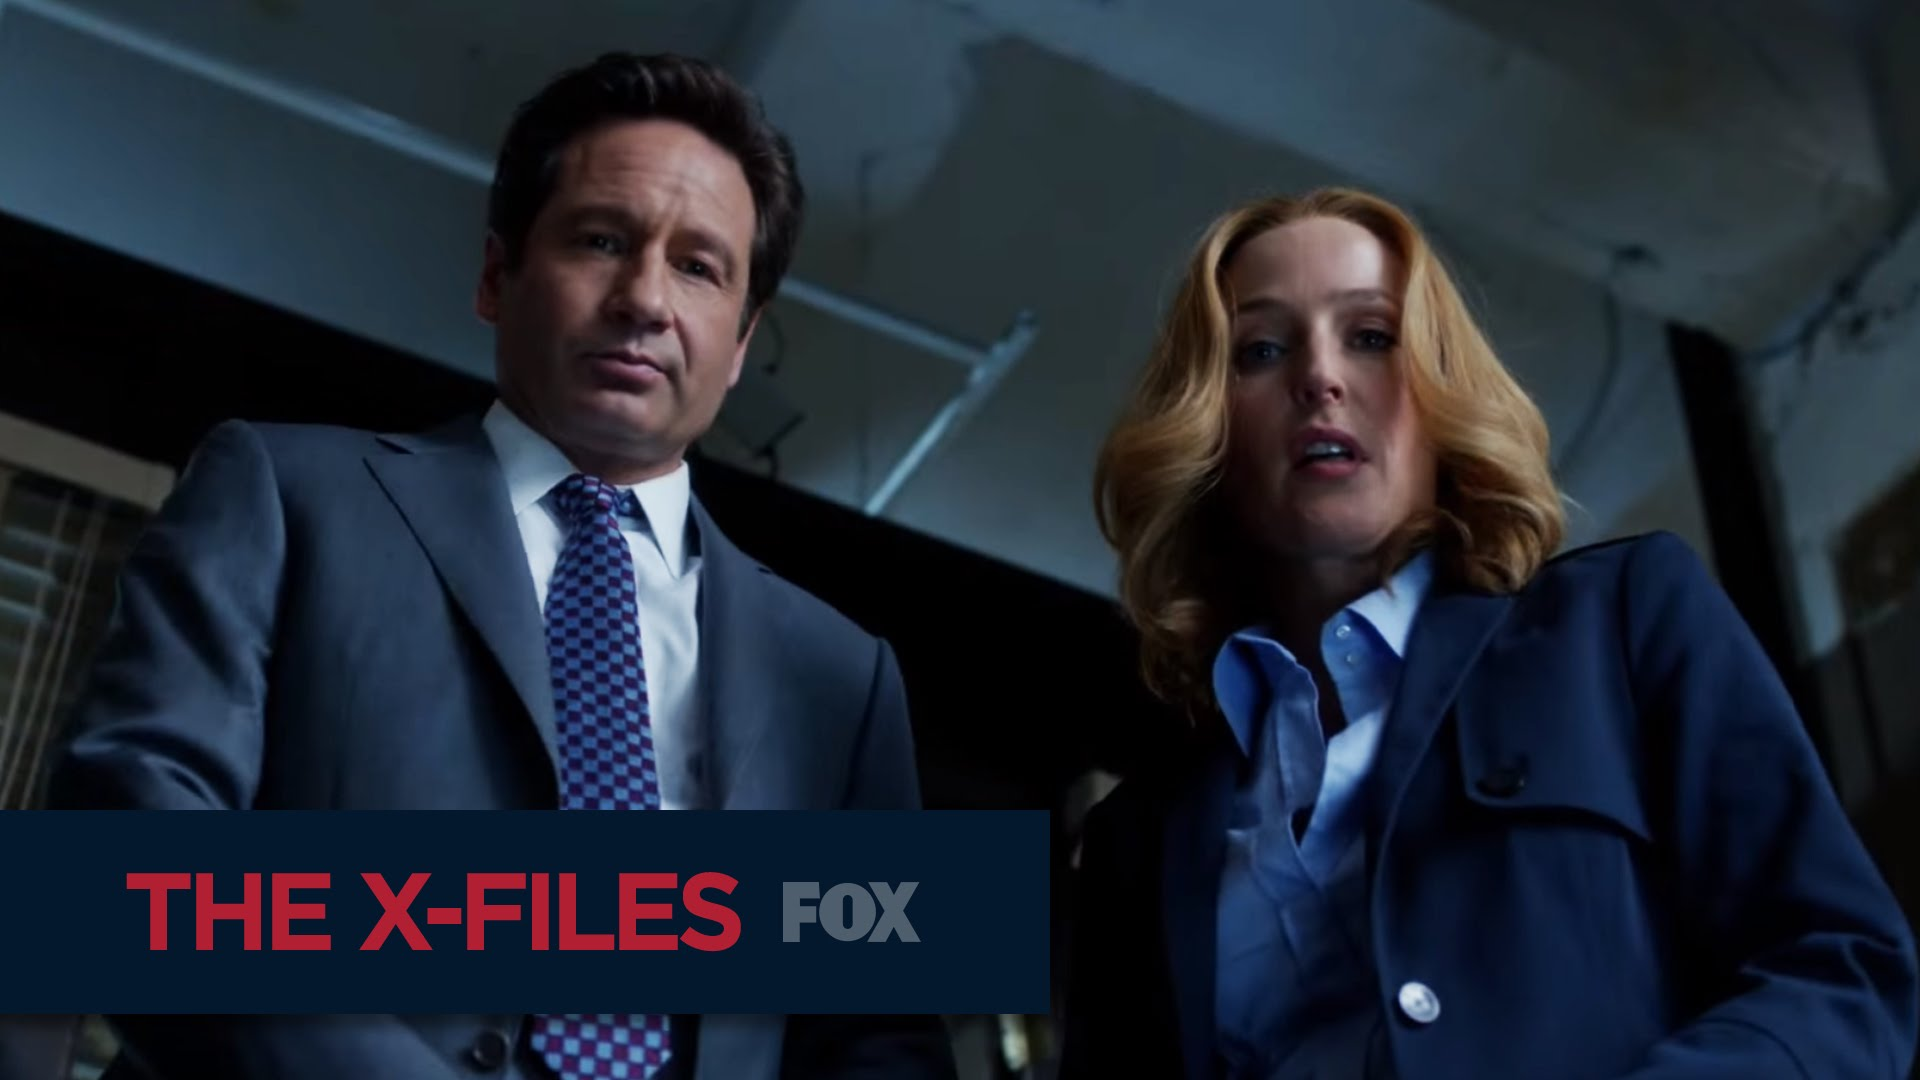 'The X-Files' – The Truth is Still Out There